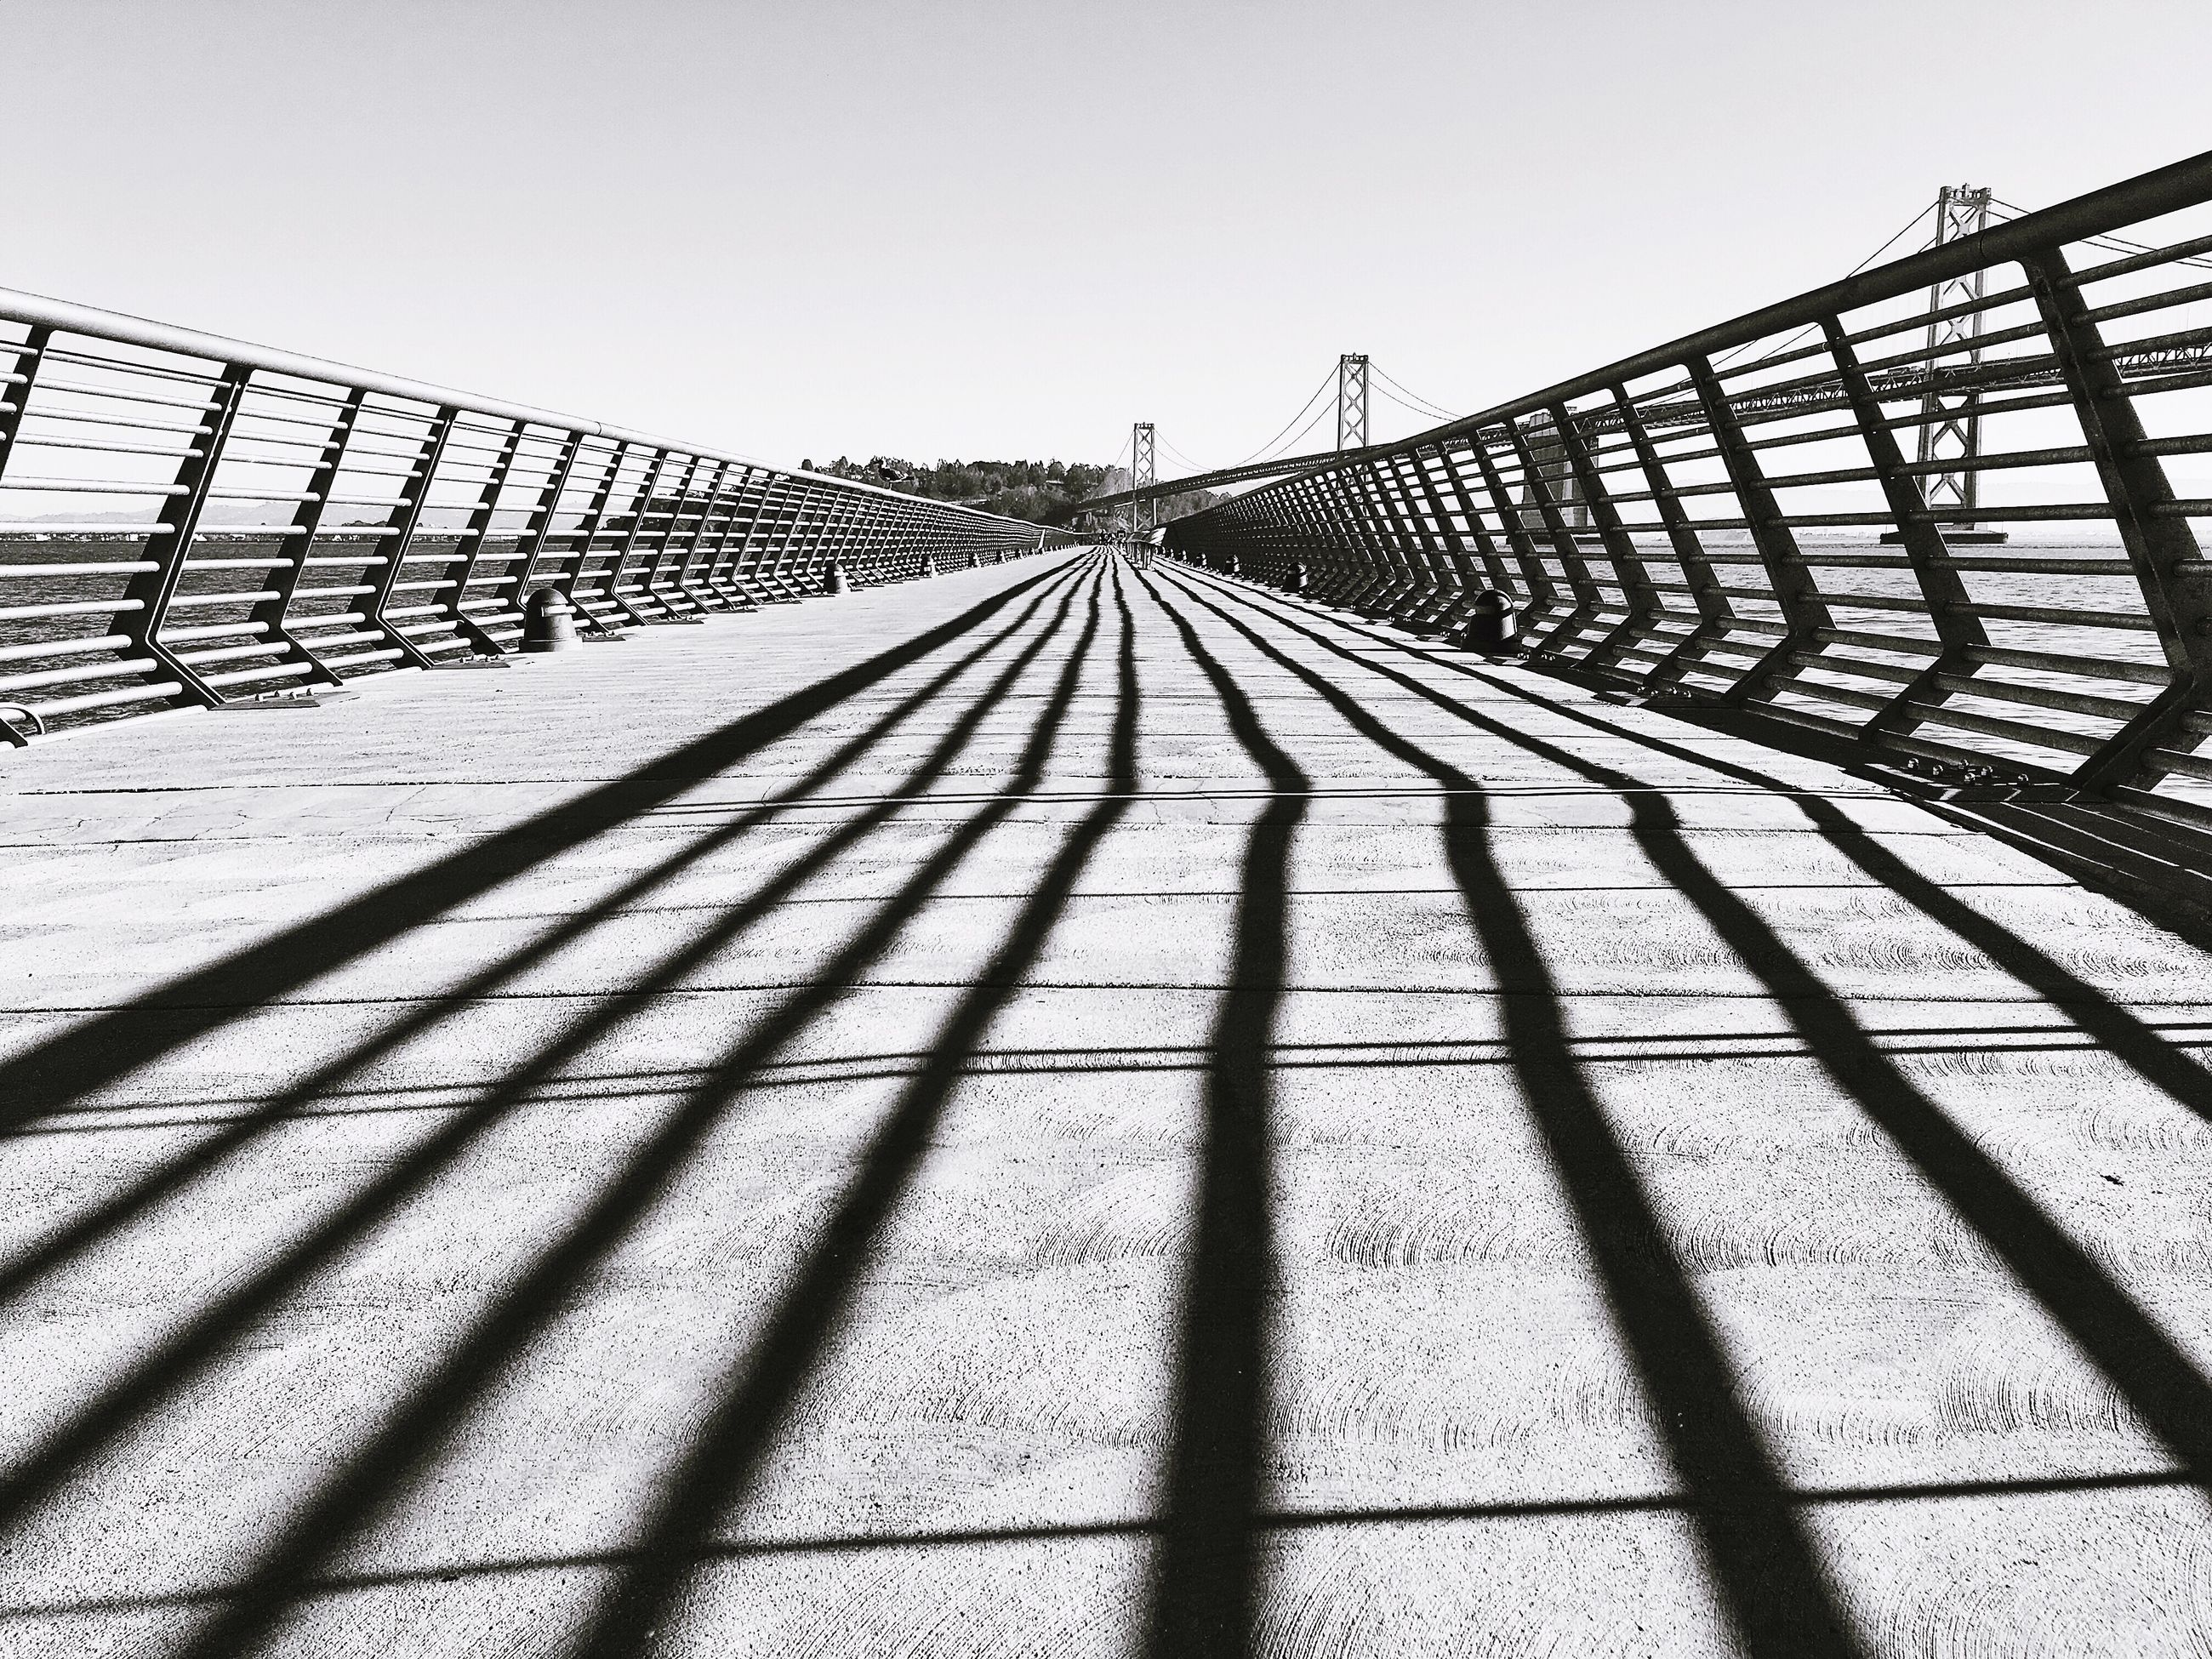 the way forward, diminishing perspective, vanishing point, clear sky, built structure, architecture, long, connection, shadow, sunlight, sky, railing, walkway, outdoors, day, no people, surface level, pattern, empty, footpath